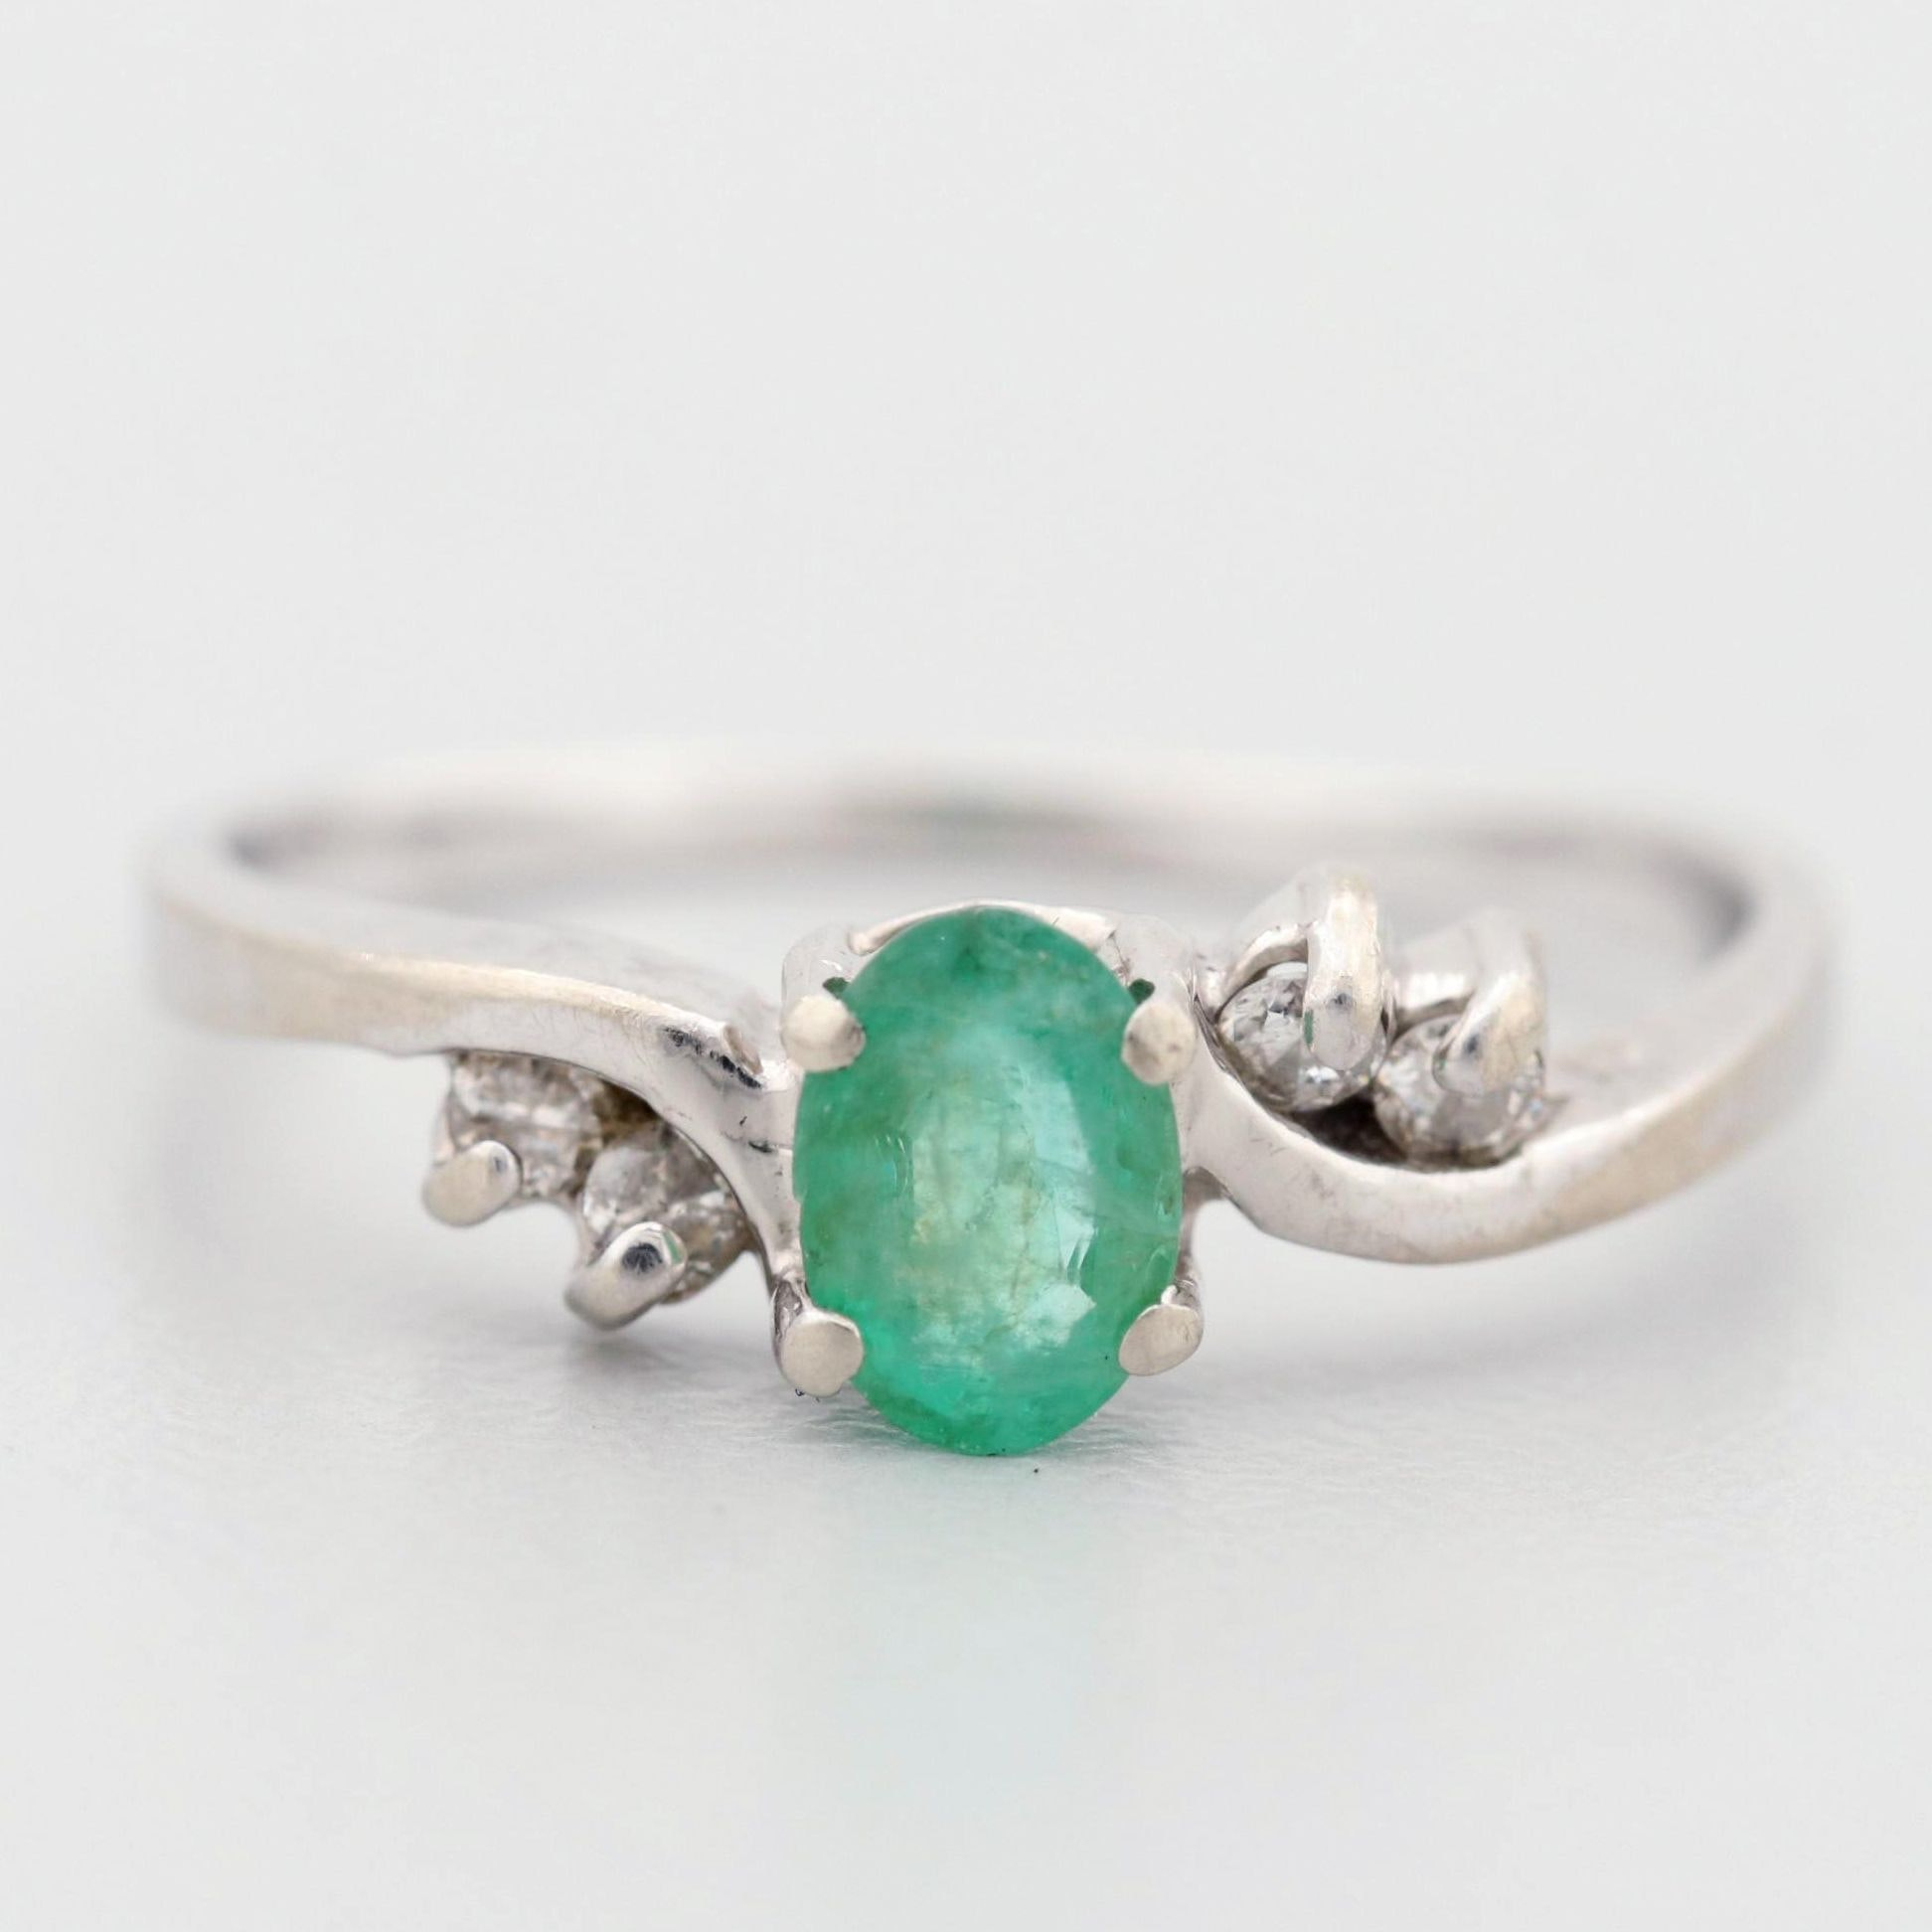 10K White Gold Emerald and Diamond Ring